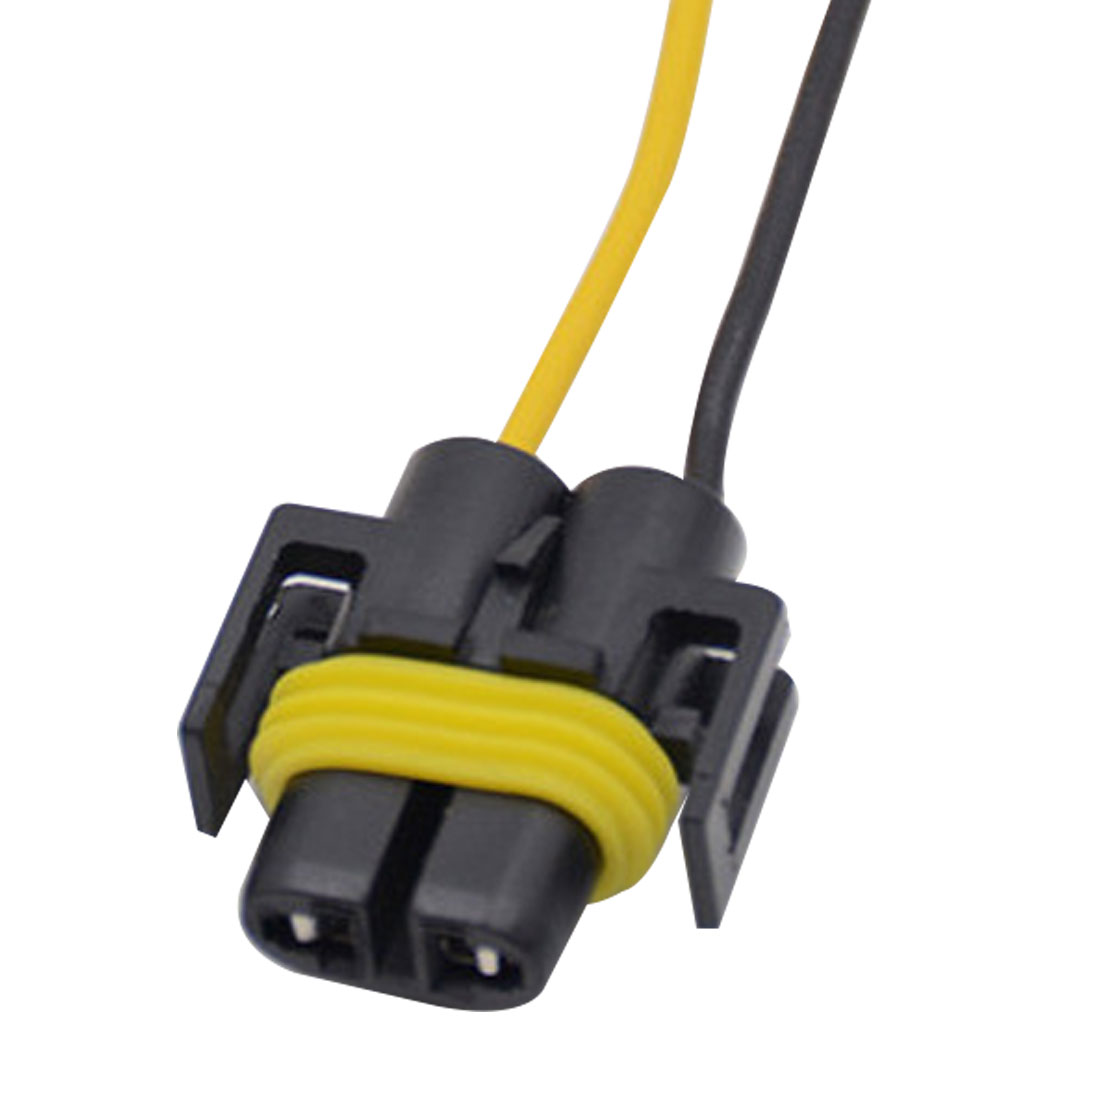 Tonewan 2pcs H8 H11 Wiring Harness Socket Female Adapter Car Wire Connector Cable Plug For HID Xenon Headlight Fog Lamp Bulb